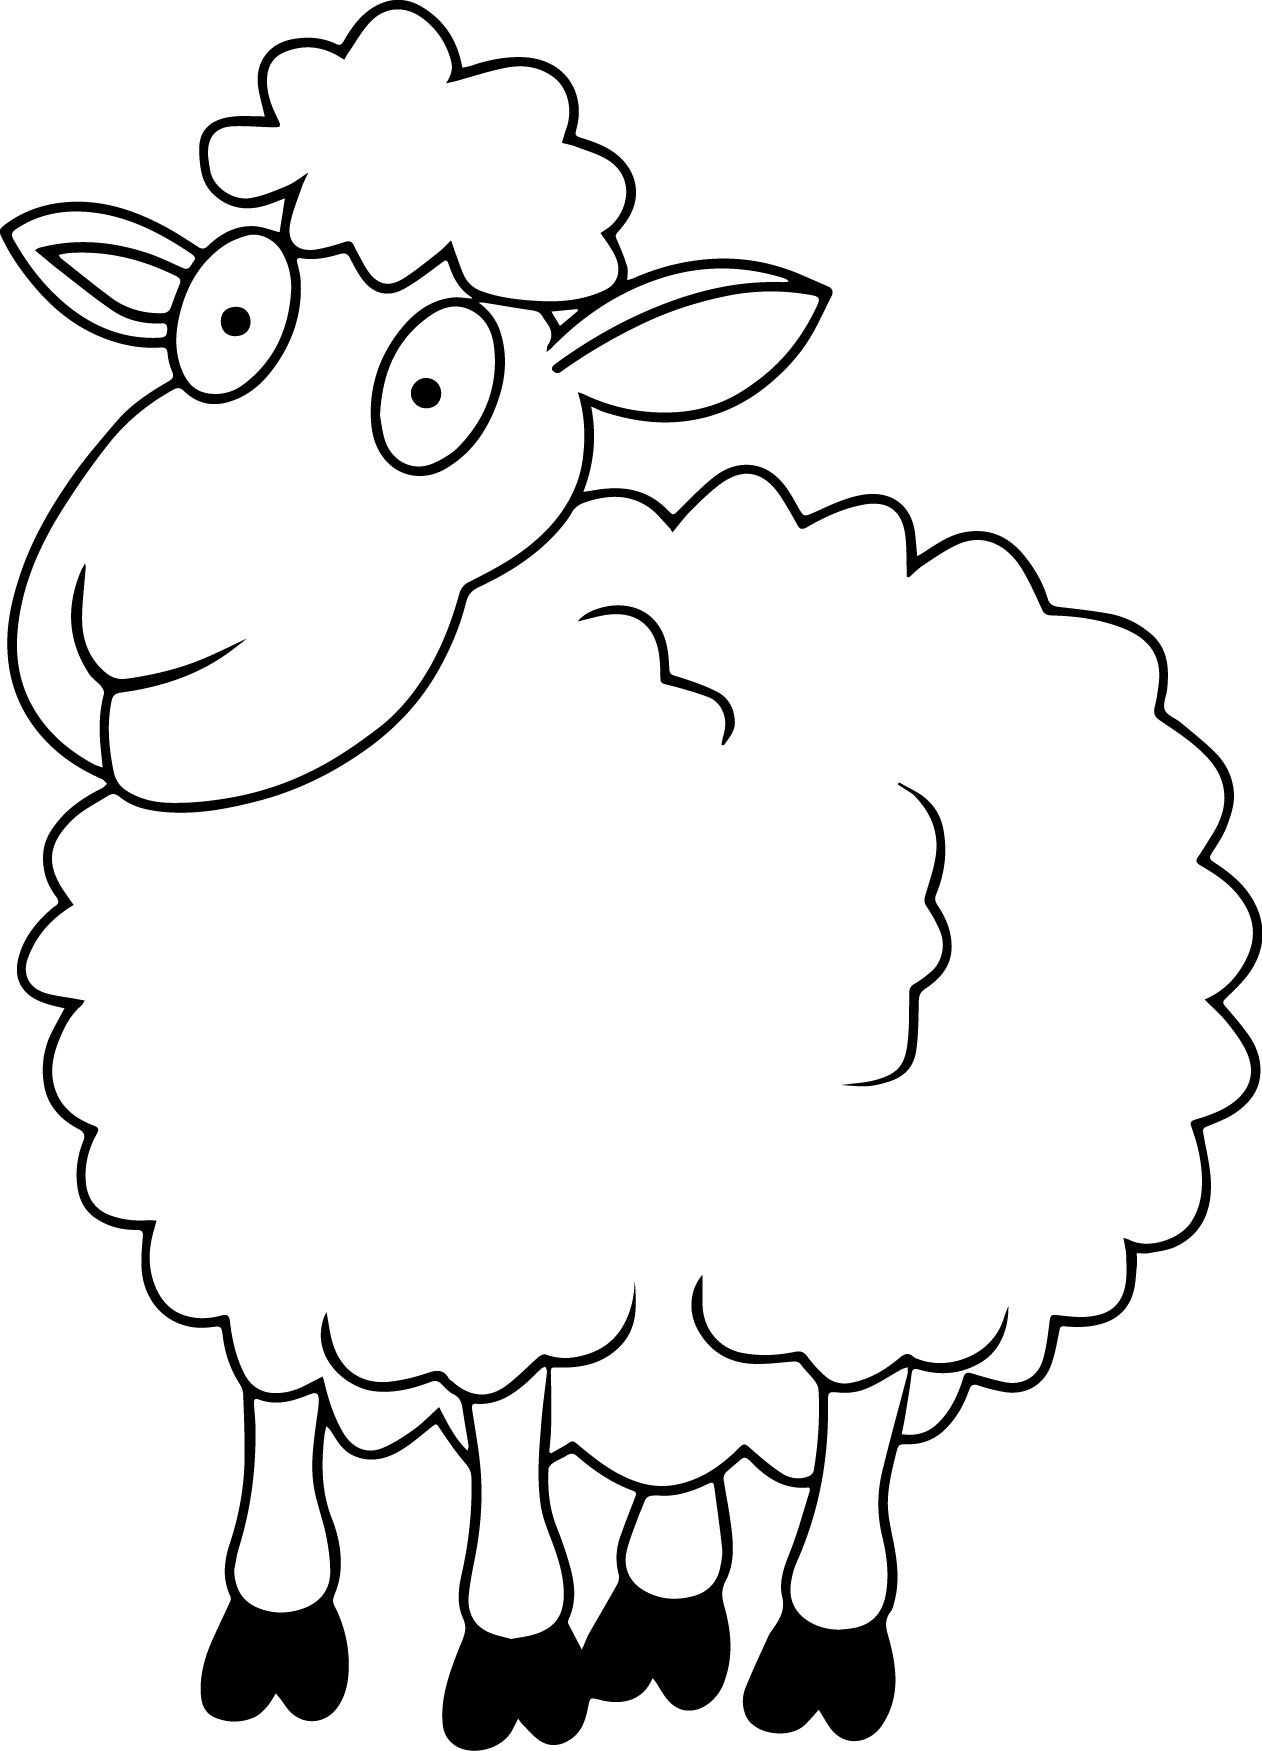 sheep colouring in pictures sheep jump coloring page wecoloringpagecom sheep in colouring pictures